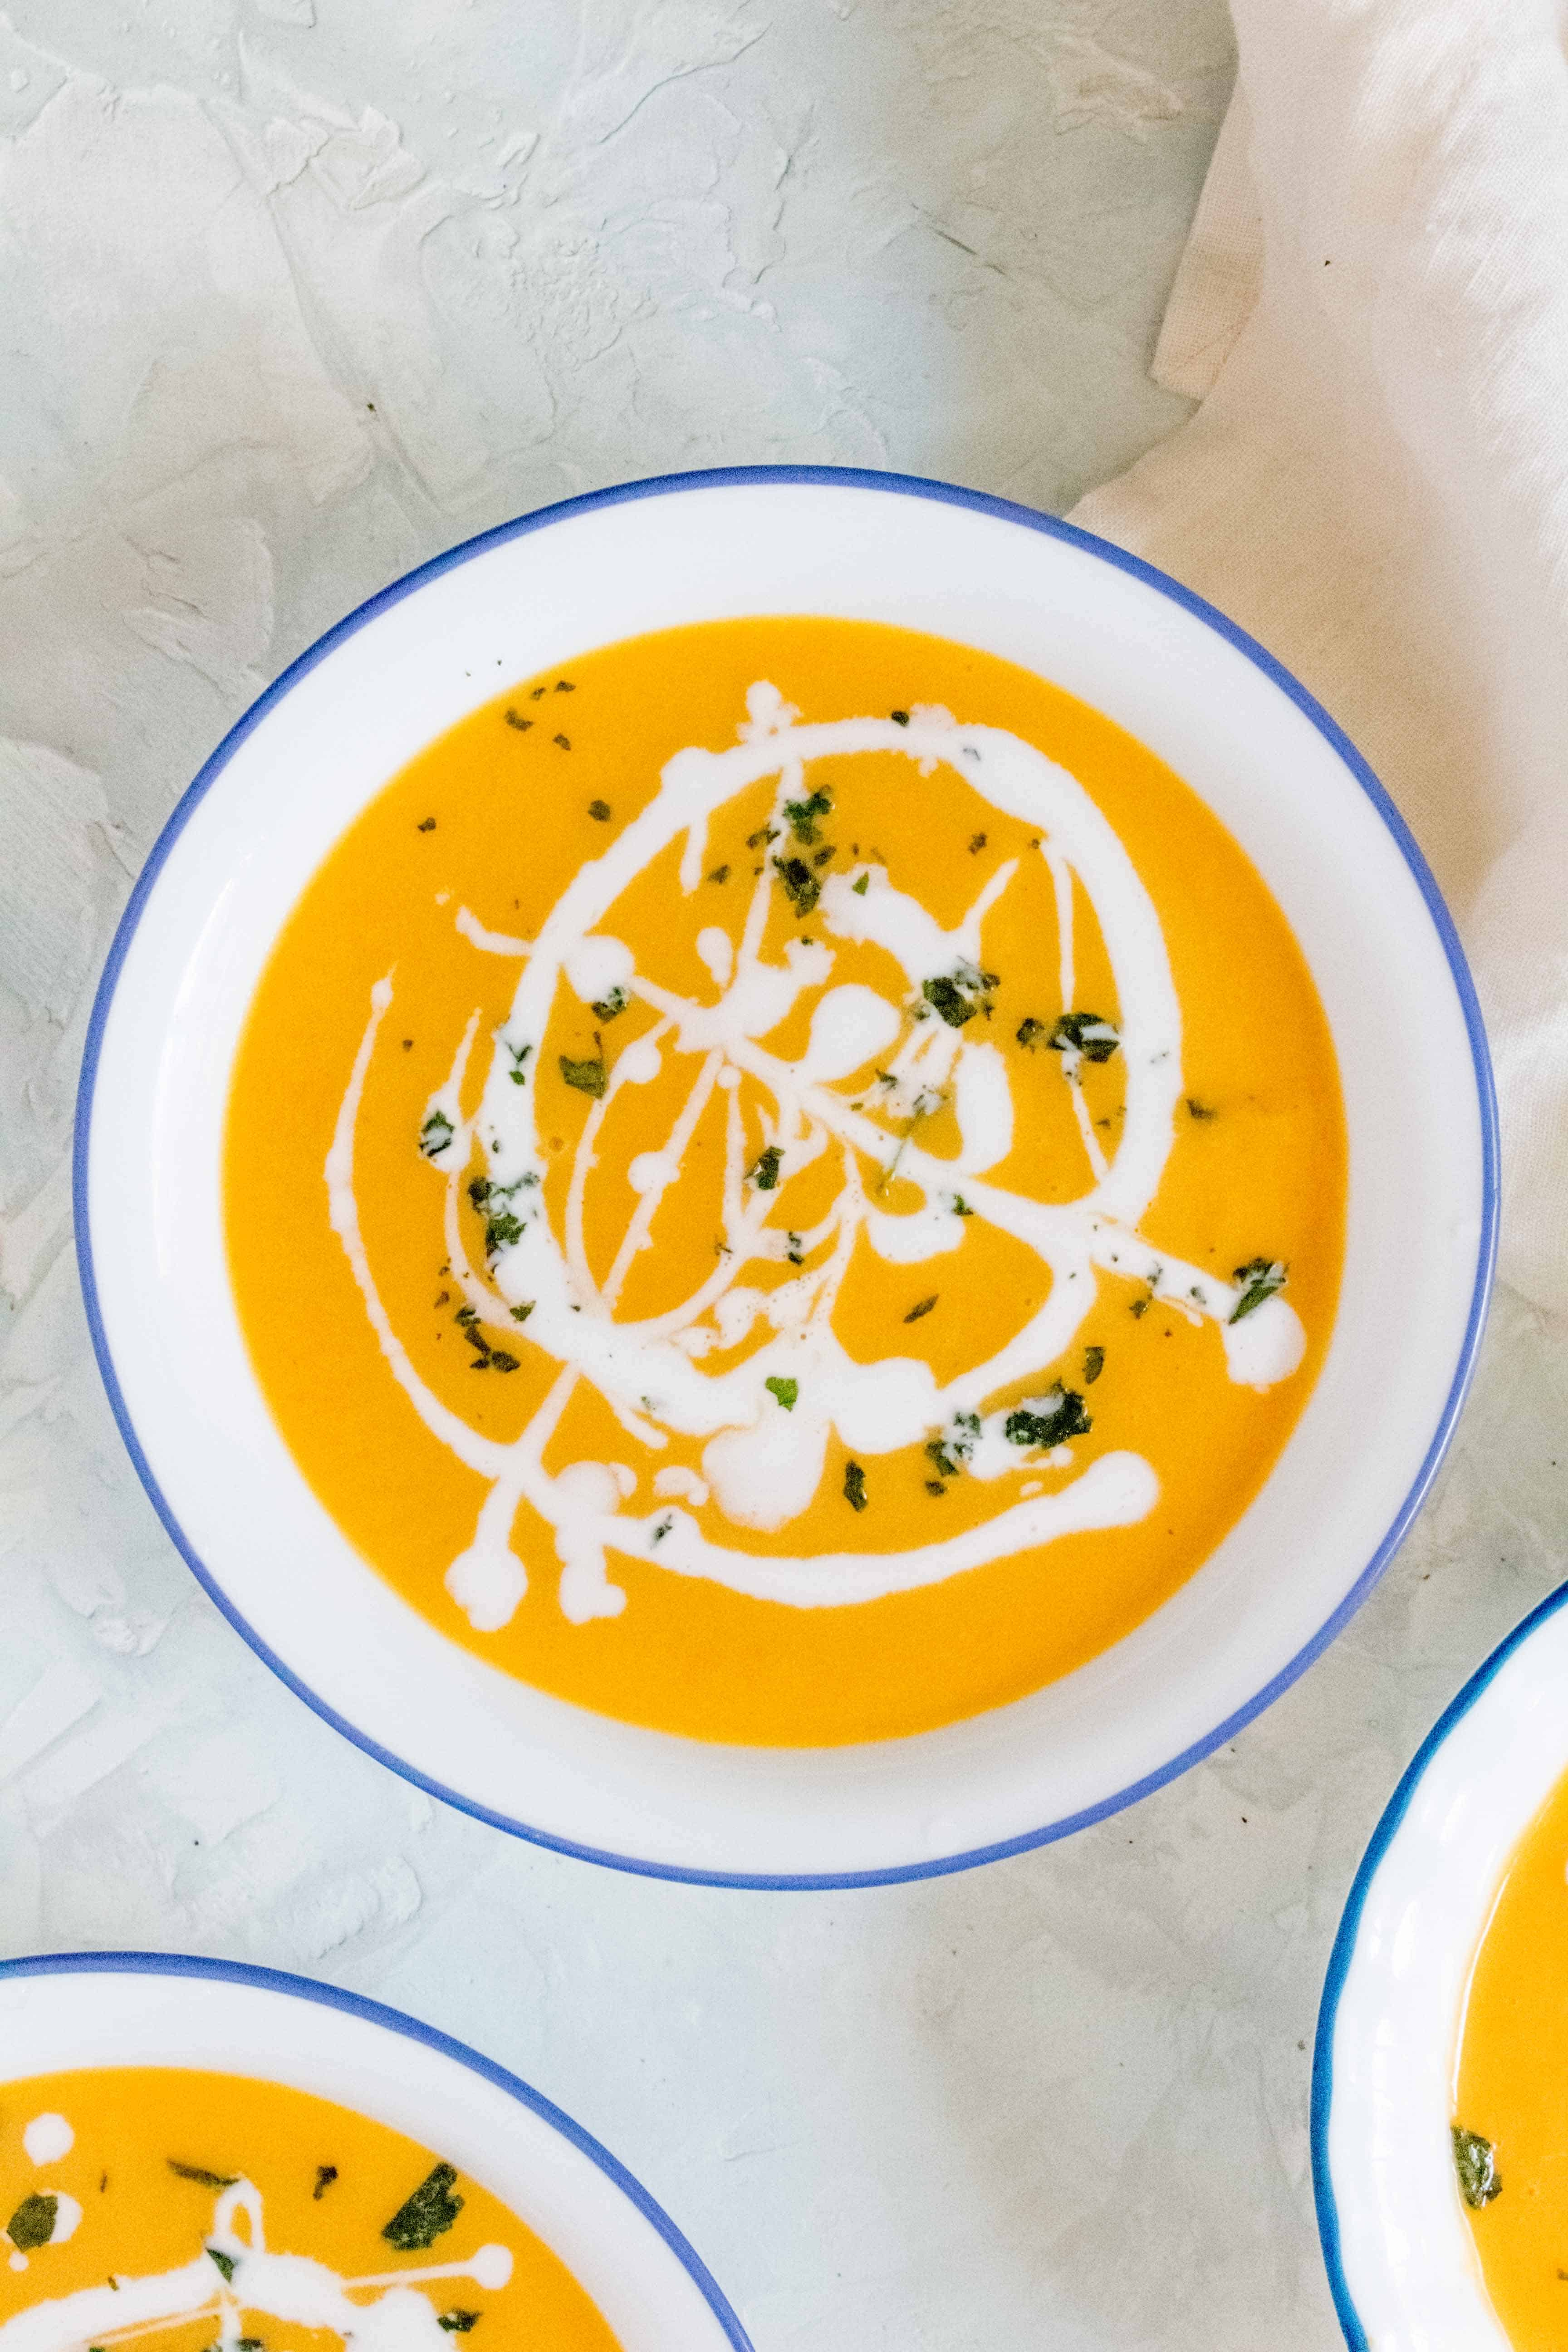 This Instant Pot Thai Carrot Sweet Potato Soup is the perfect mix of sweet with a hint of heat. Super quick and easy to make, you're going to want to make this regularly!